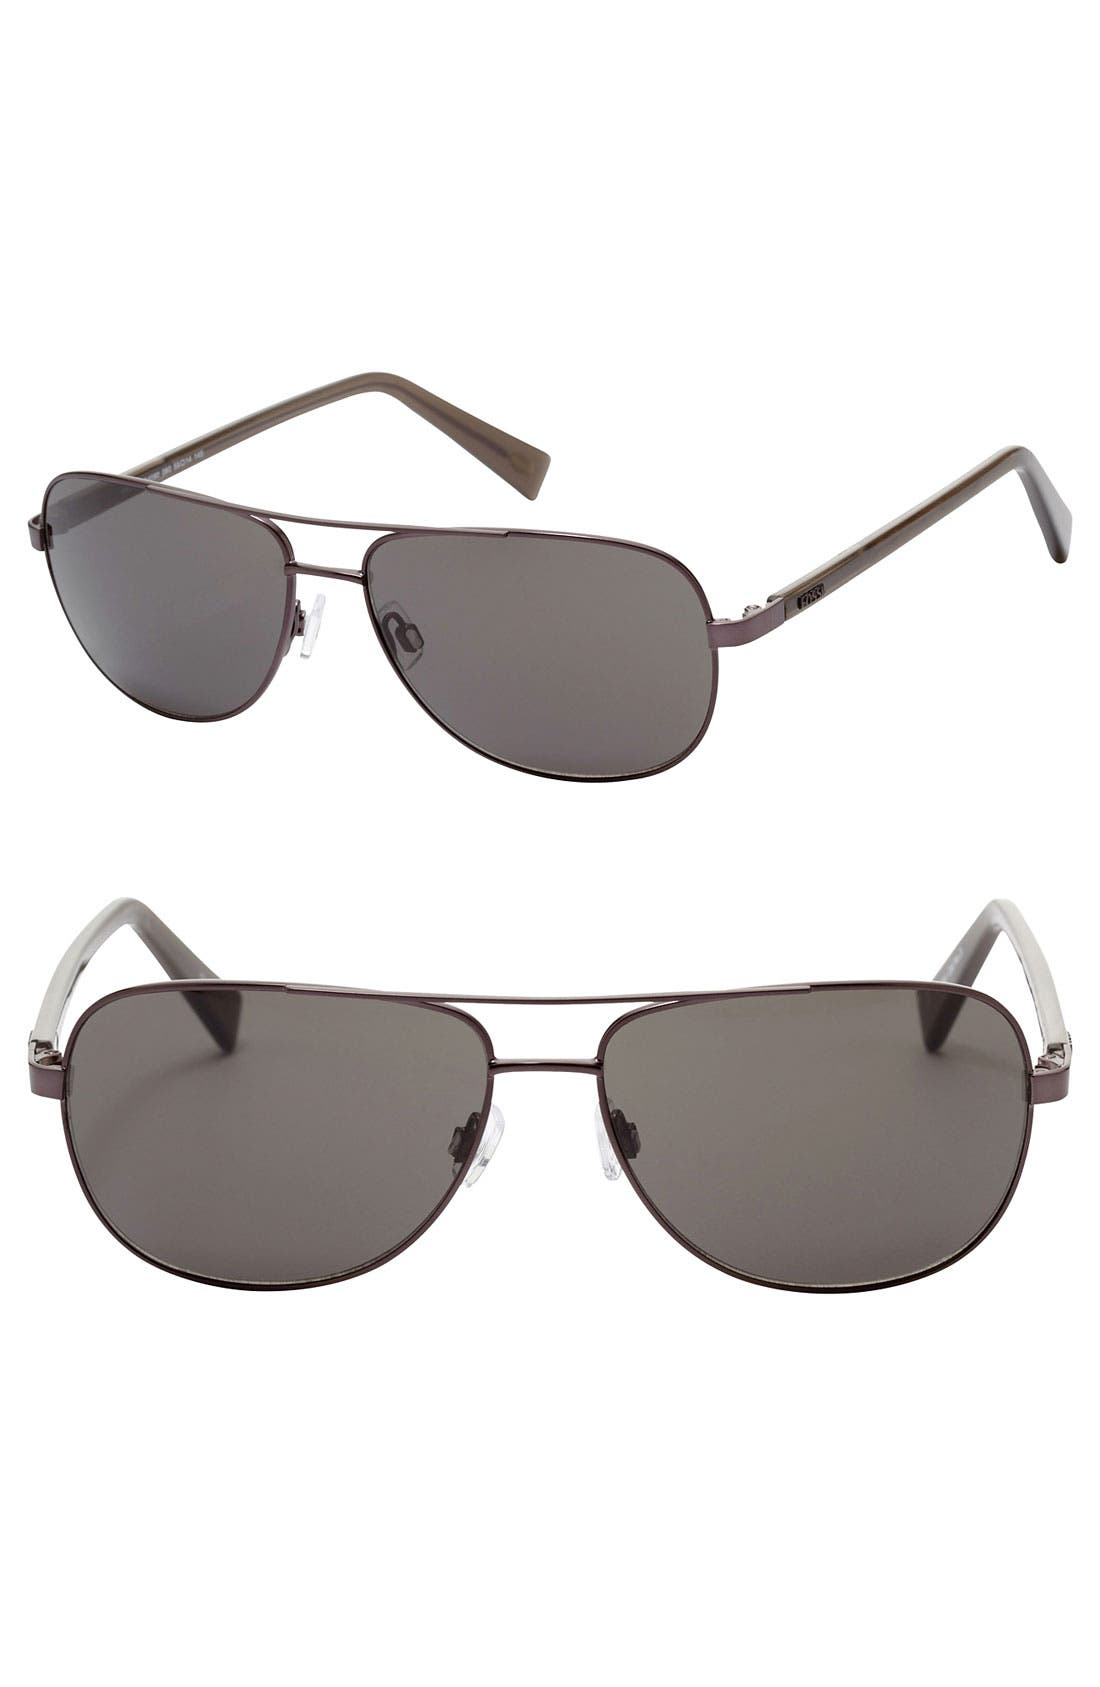 Alternate Image 1 Selected - Fossil 'Wade' 59mm Aviator Sunglasses